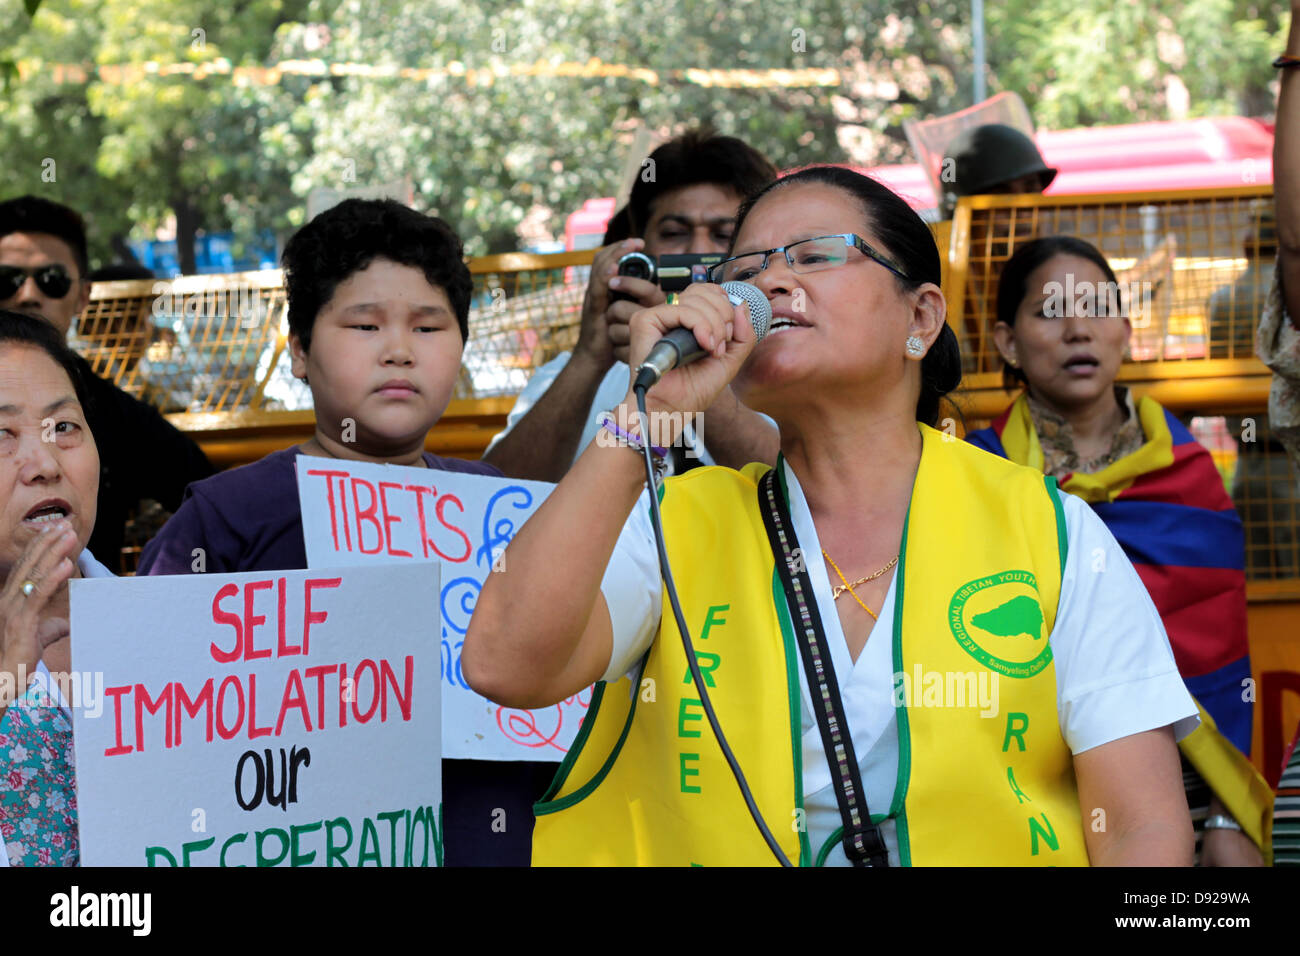 A Tibetan woman protests in New Delhi, India, against the Chinese occupation of Tibet. - Stock Image